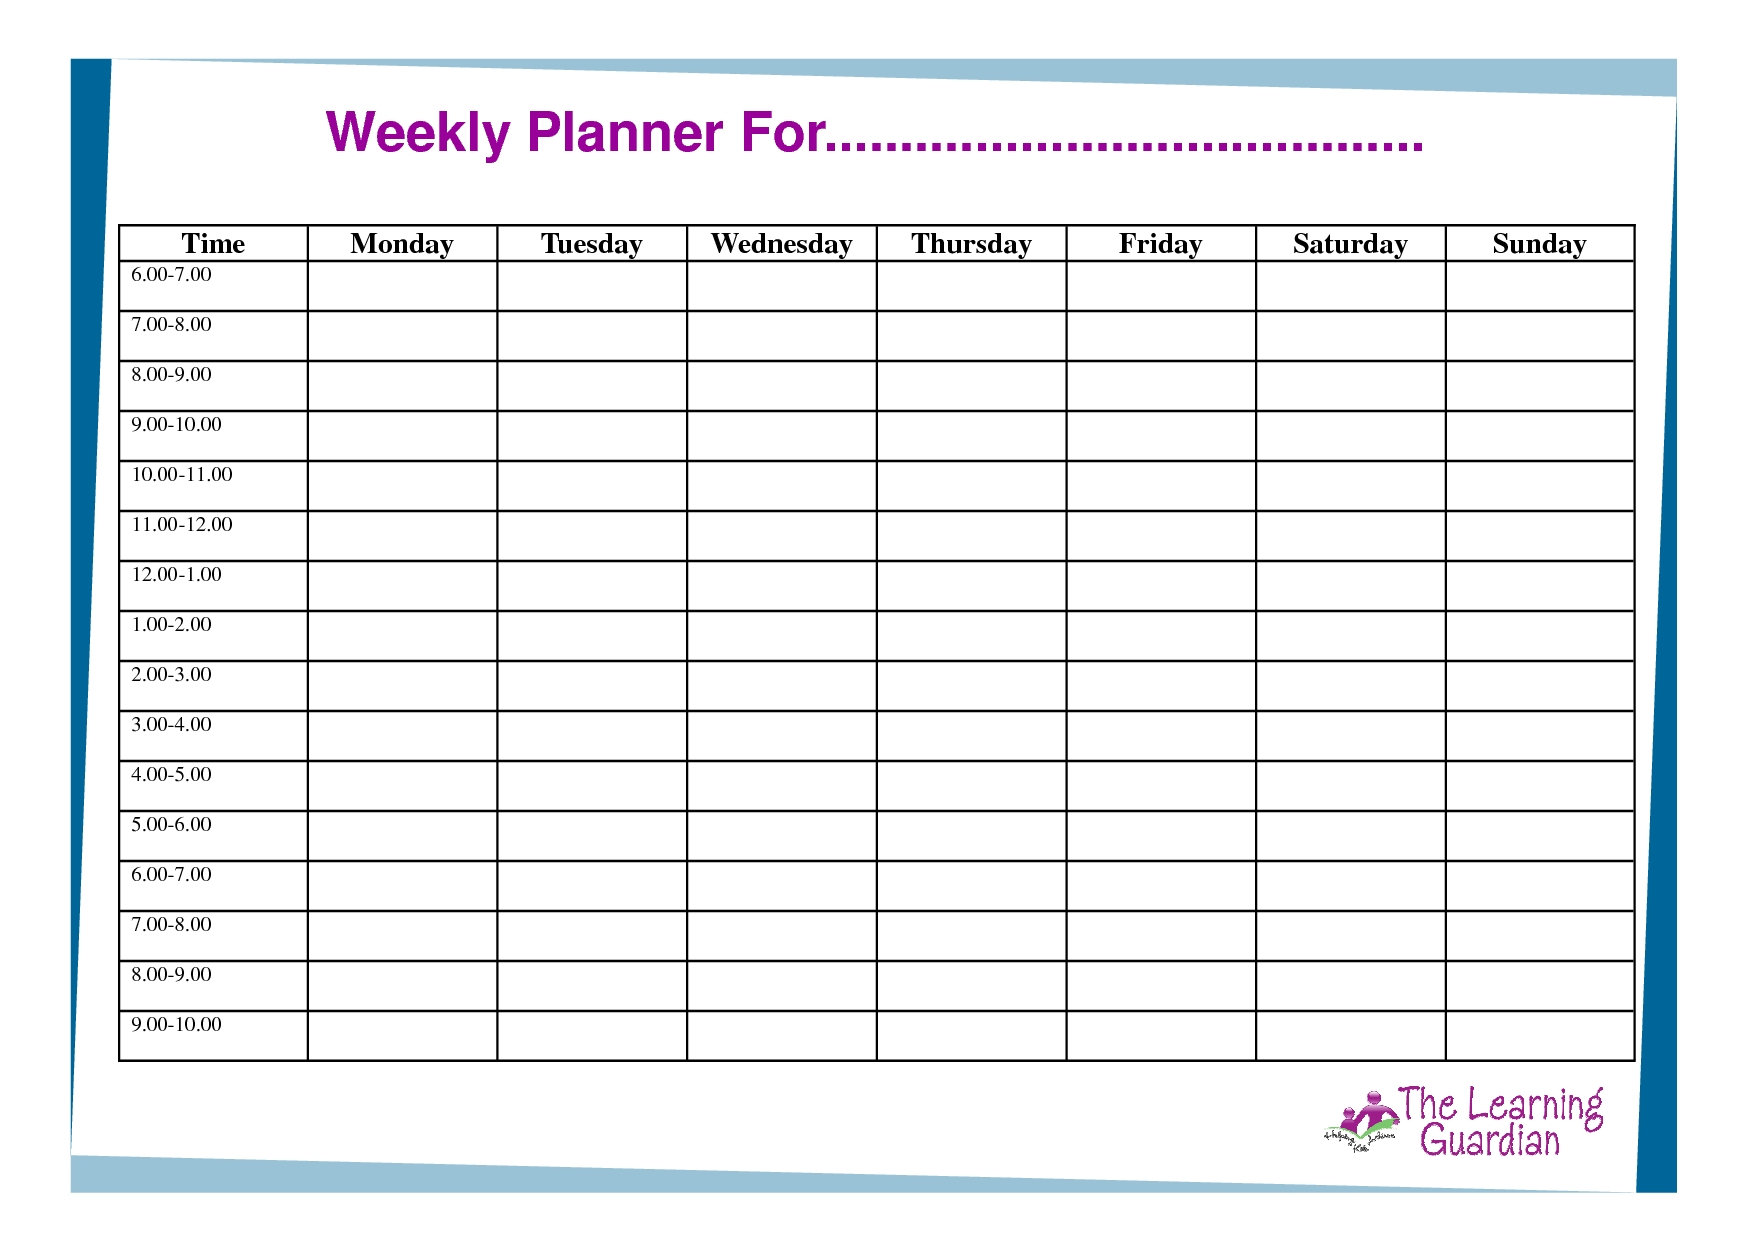 Free Printable Weekly Calendar Templates | Weekly Planner-Monday To Friday Schedule Template